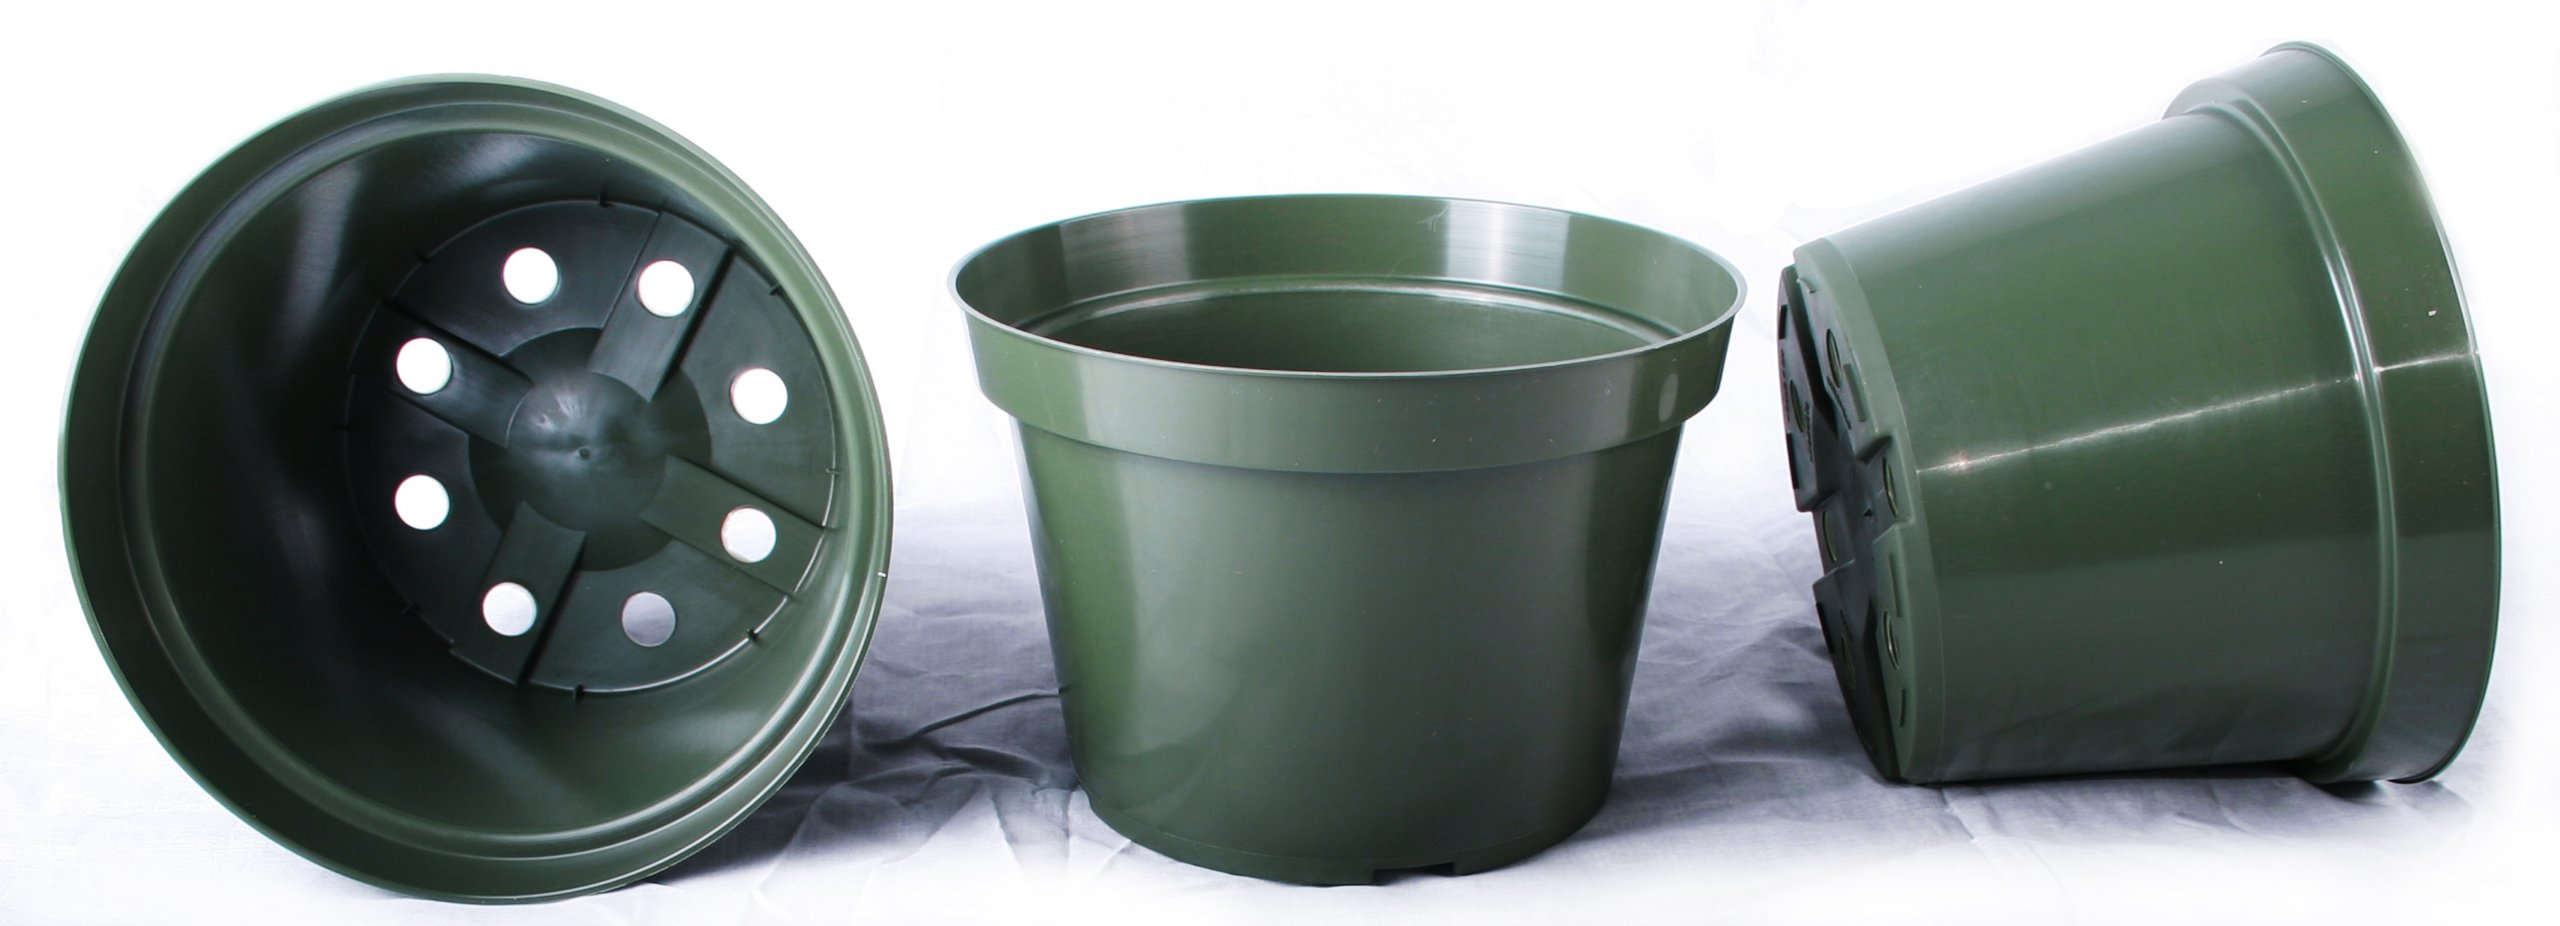 13 NEW 8 Inch Azalea Plastic Nursery Pots ~ Pots ARE 8 Inch Round At the Top and 5.6 Inch Deep. by Azalea